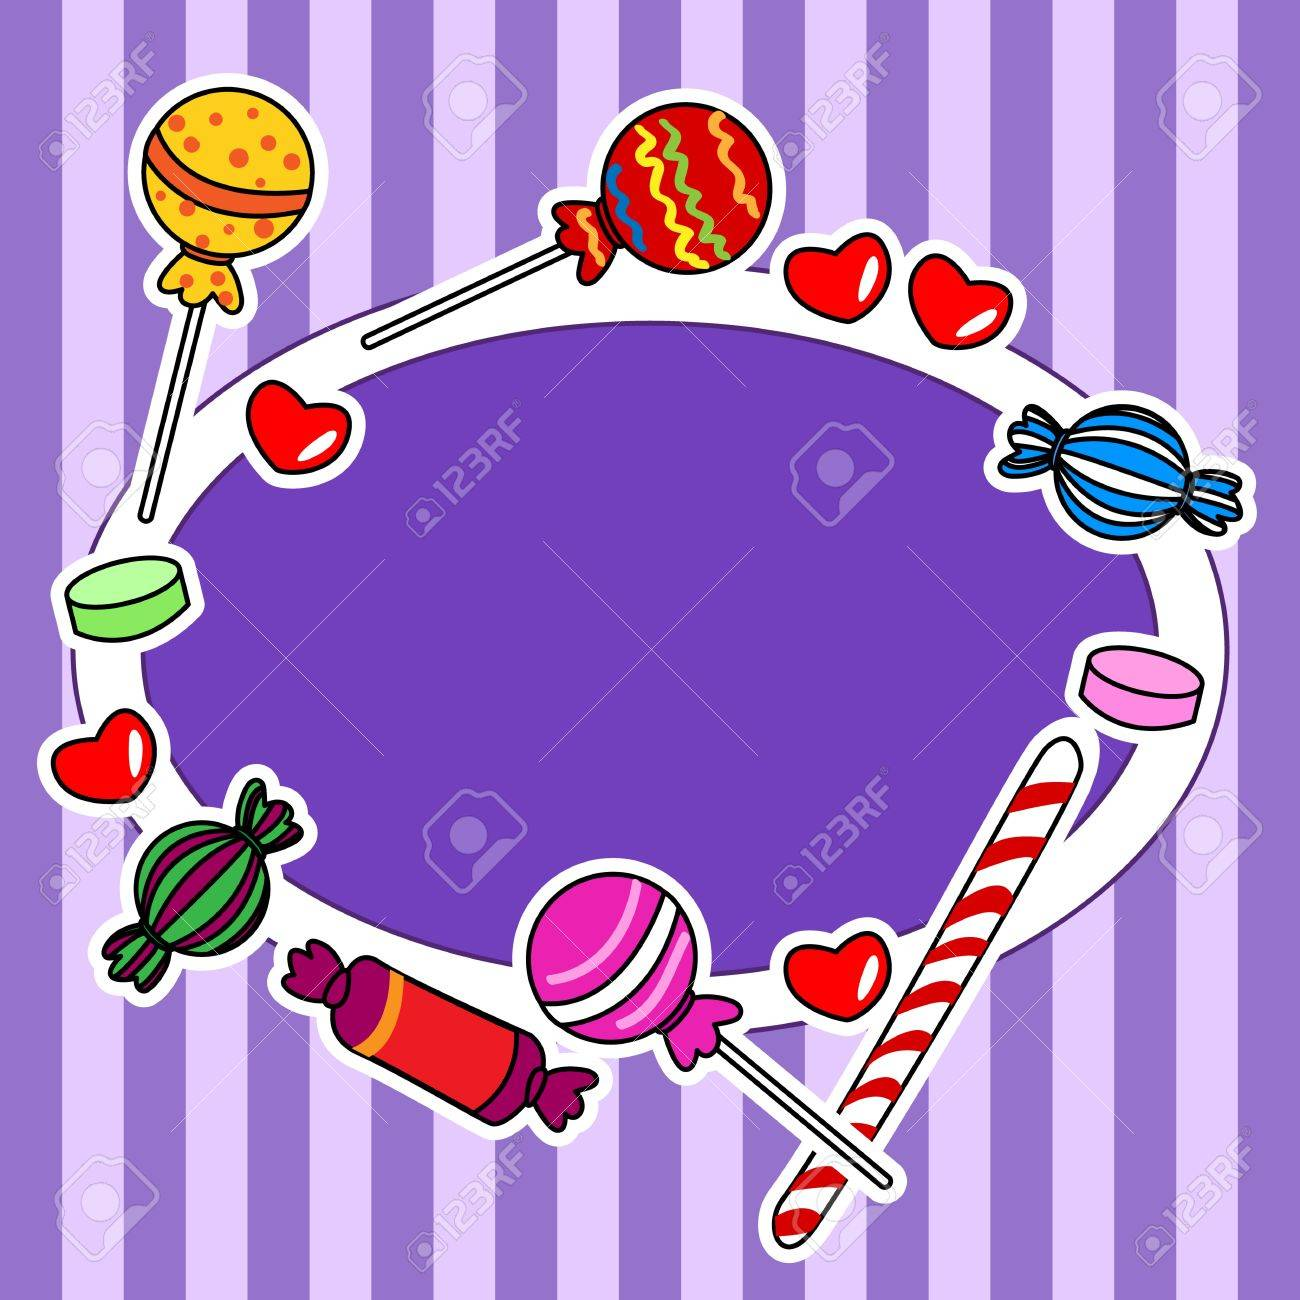 Cute And Fun Hand Drawn Candy Or Other Sweets Over Stripped Background